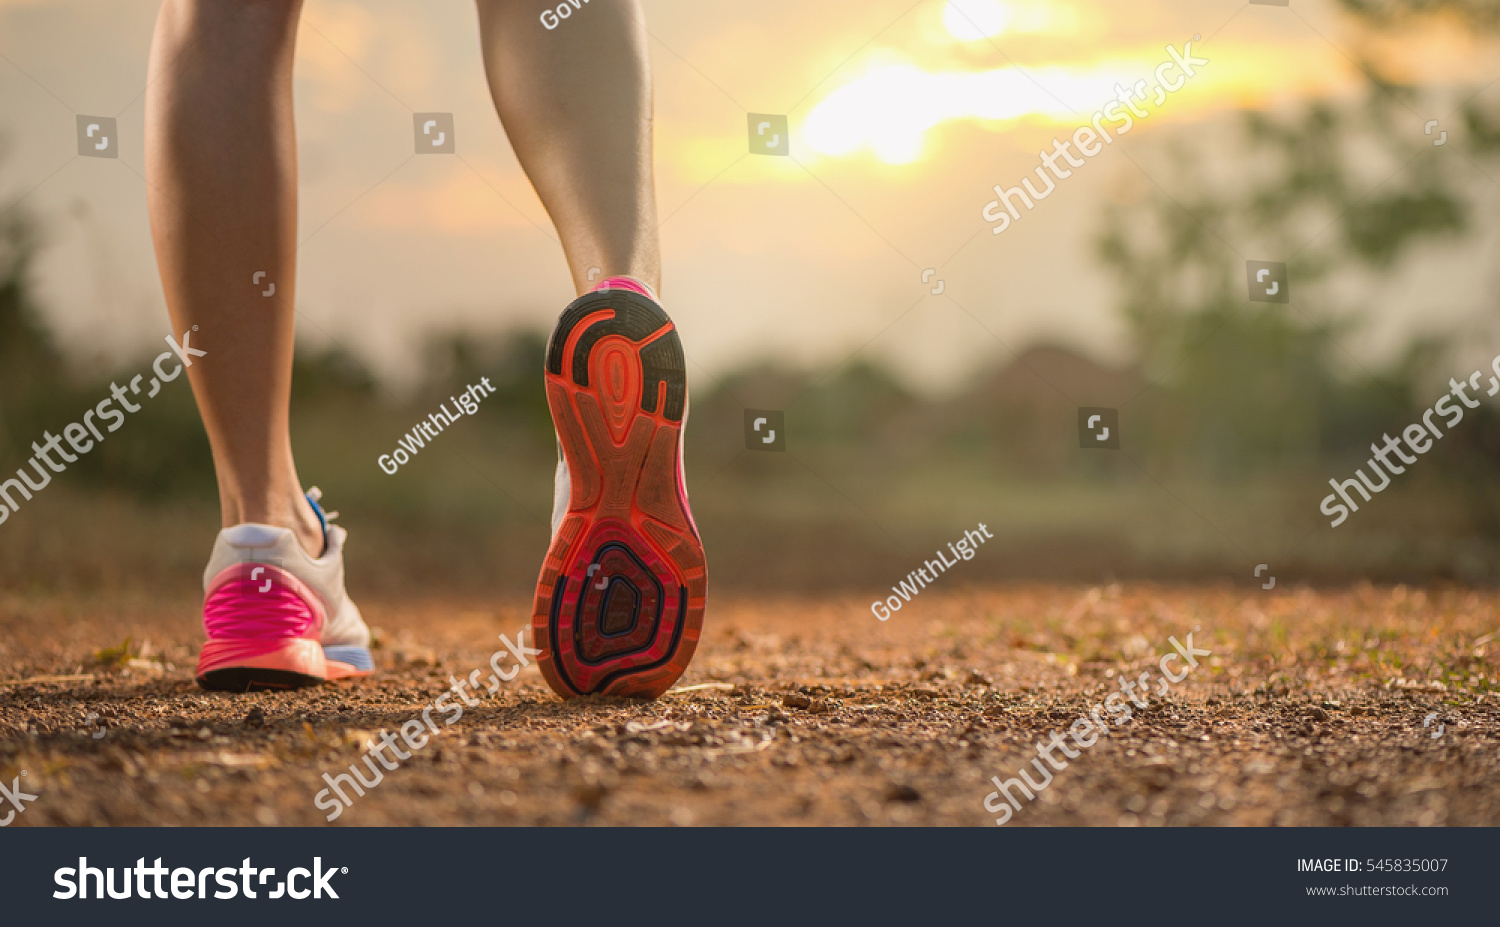 Runner feet running on running road closeup on shoe. woman fitnes #545835007